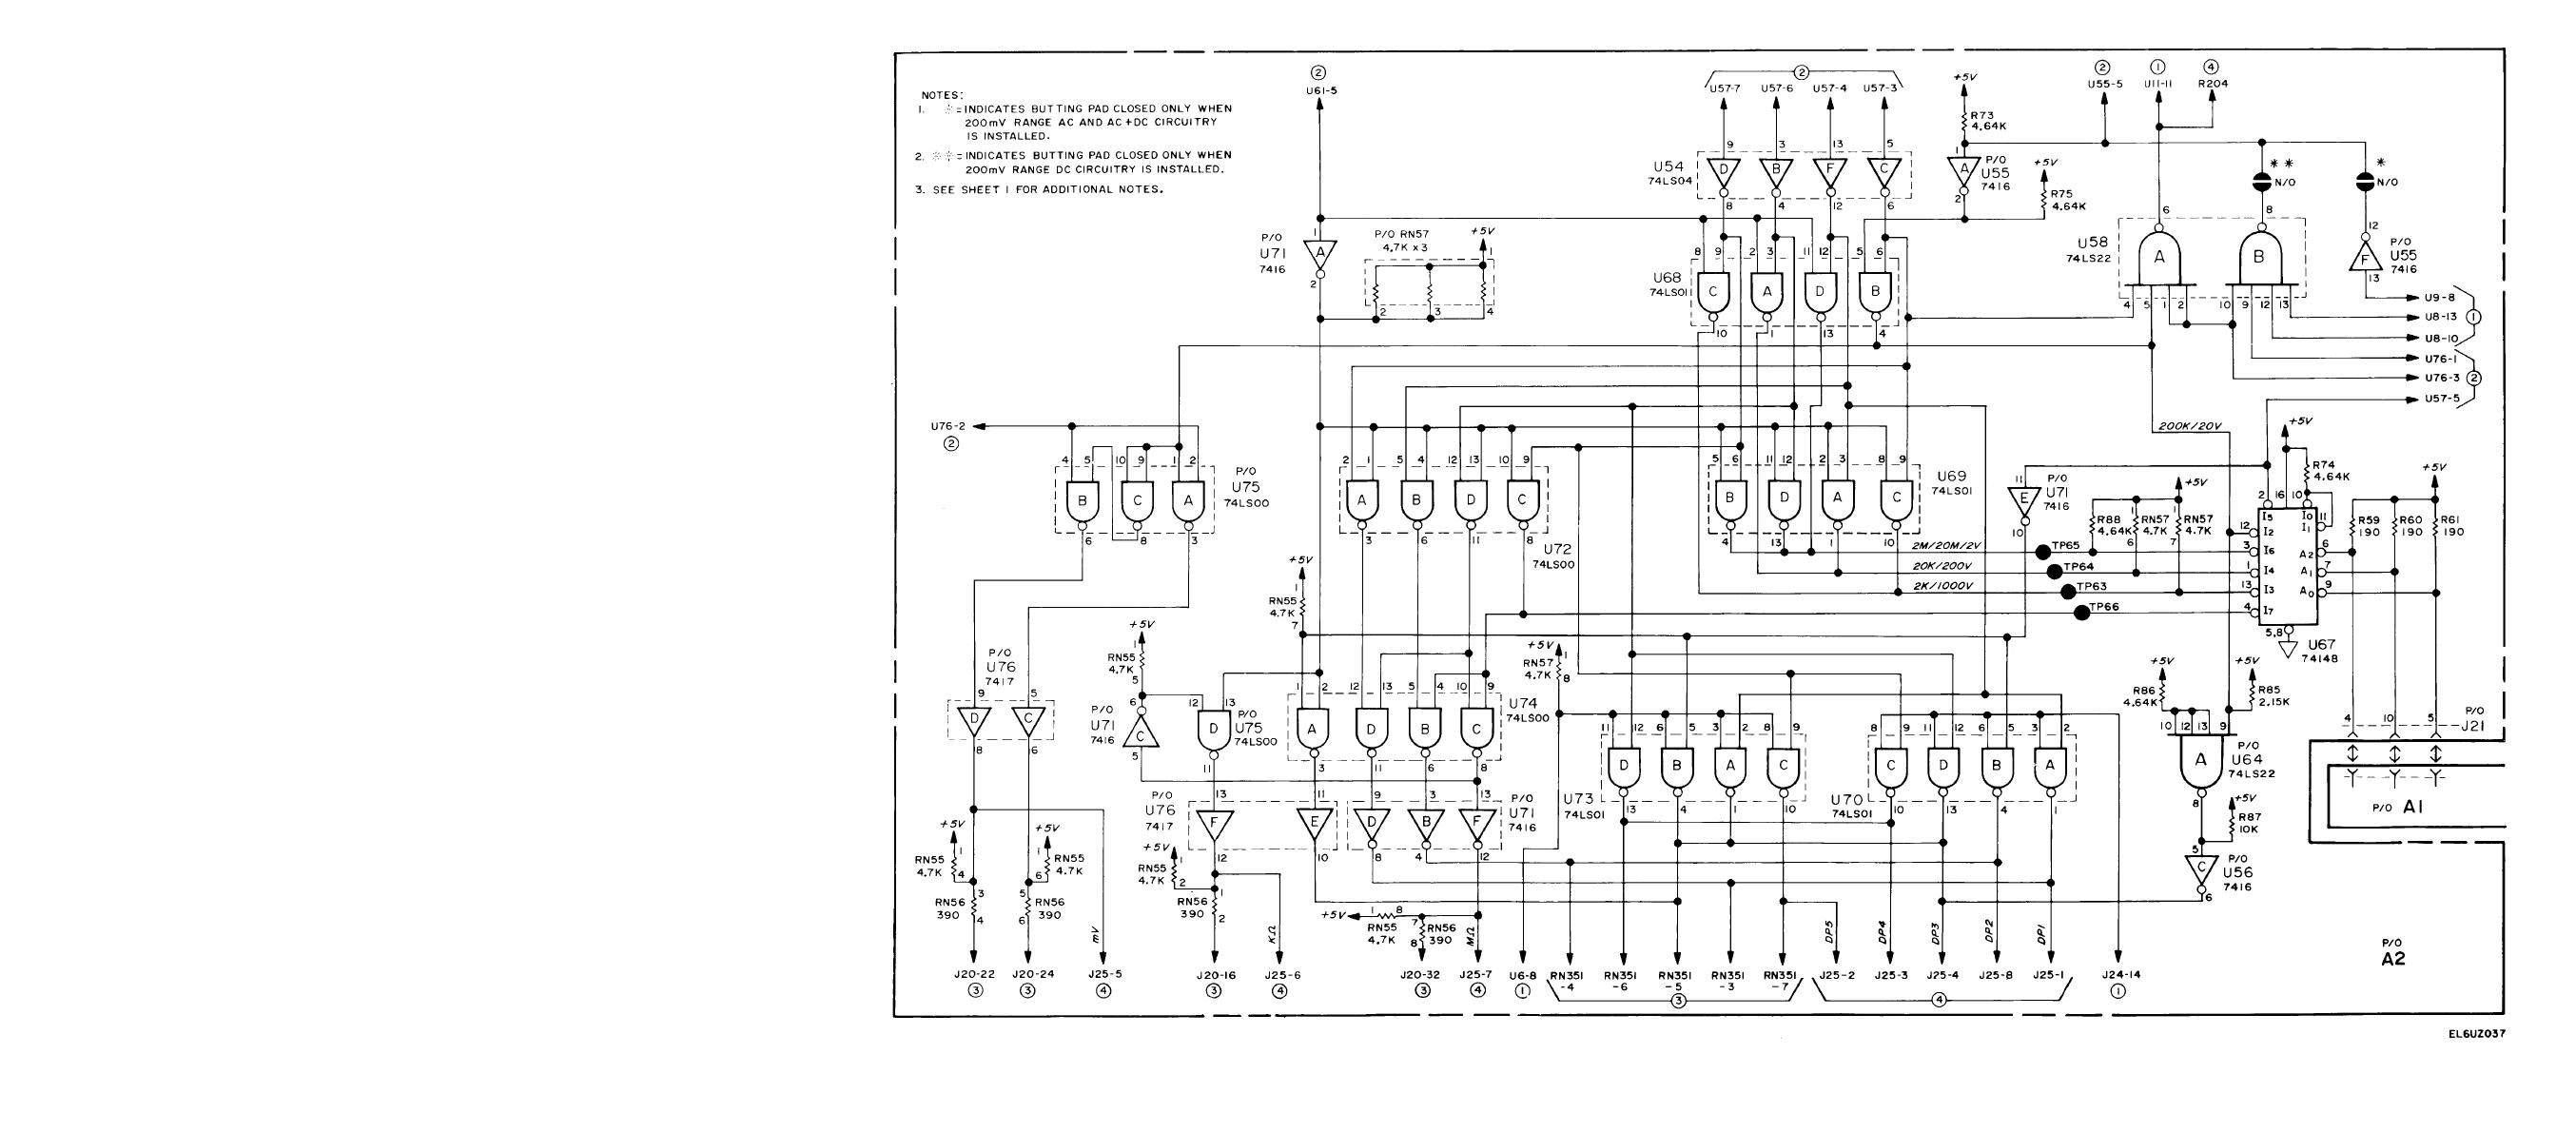 Siemens S7 300 Module Data Manual moreover Using Dpst Relay To Control Ac Load moreover 134 Using A Latching Relay Driver For True Bypass besides Default On Latch Off Mosfet Power Switch besides Watch. on latching circuit diagram